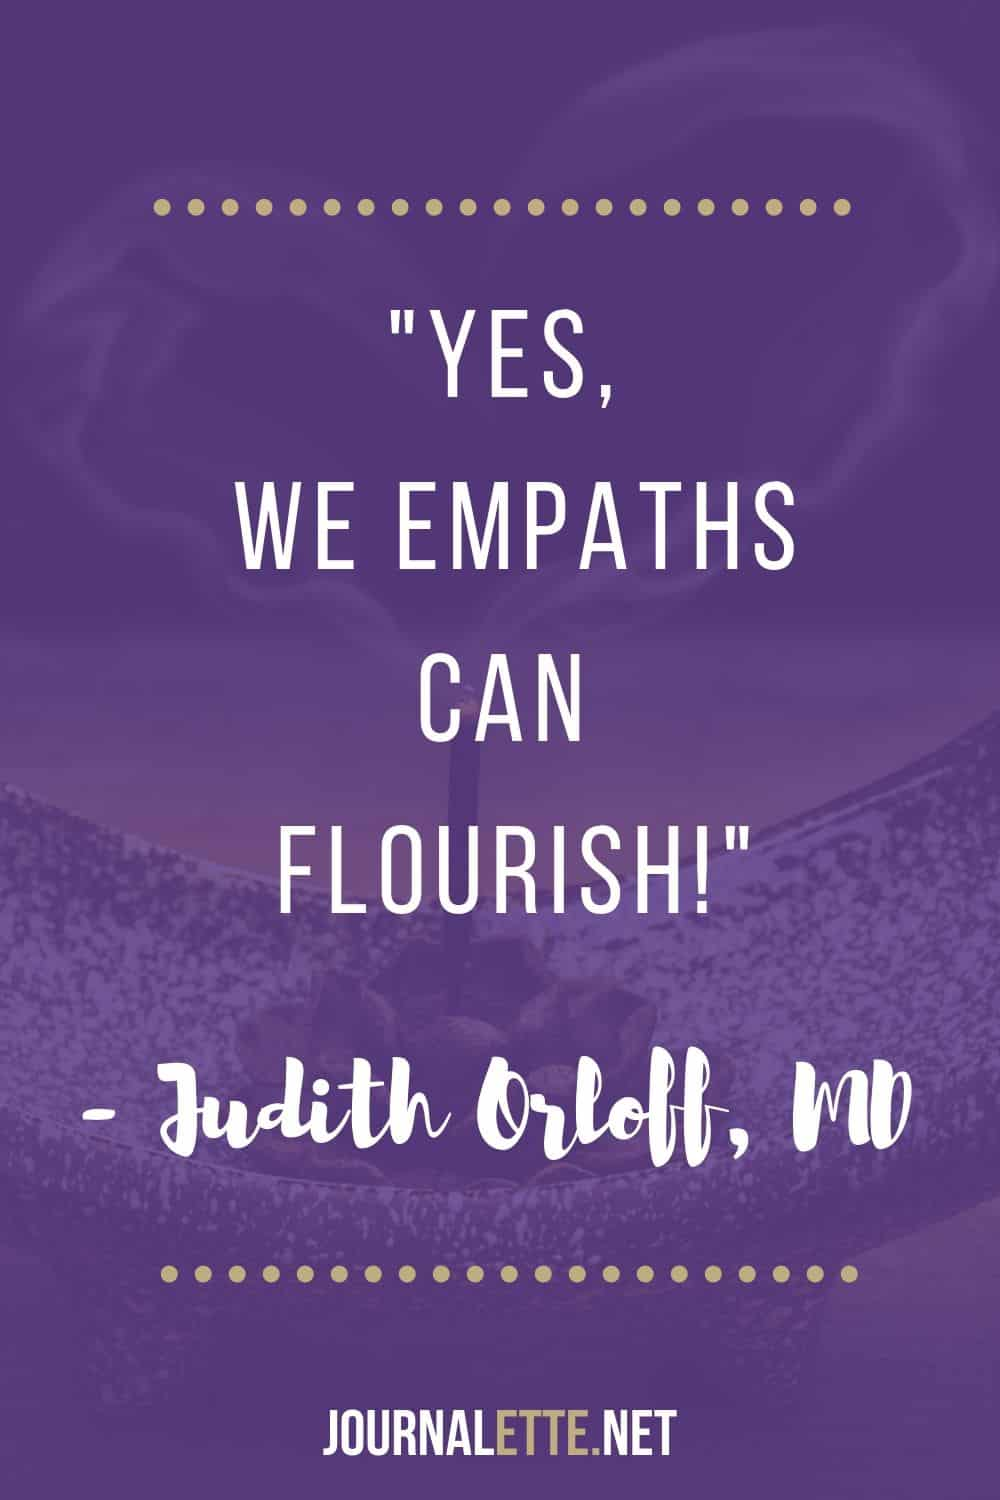 quote for empaths by dr judith orloff, empaths can flourish